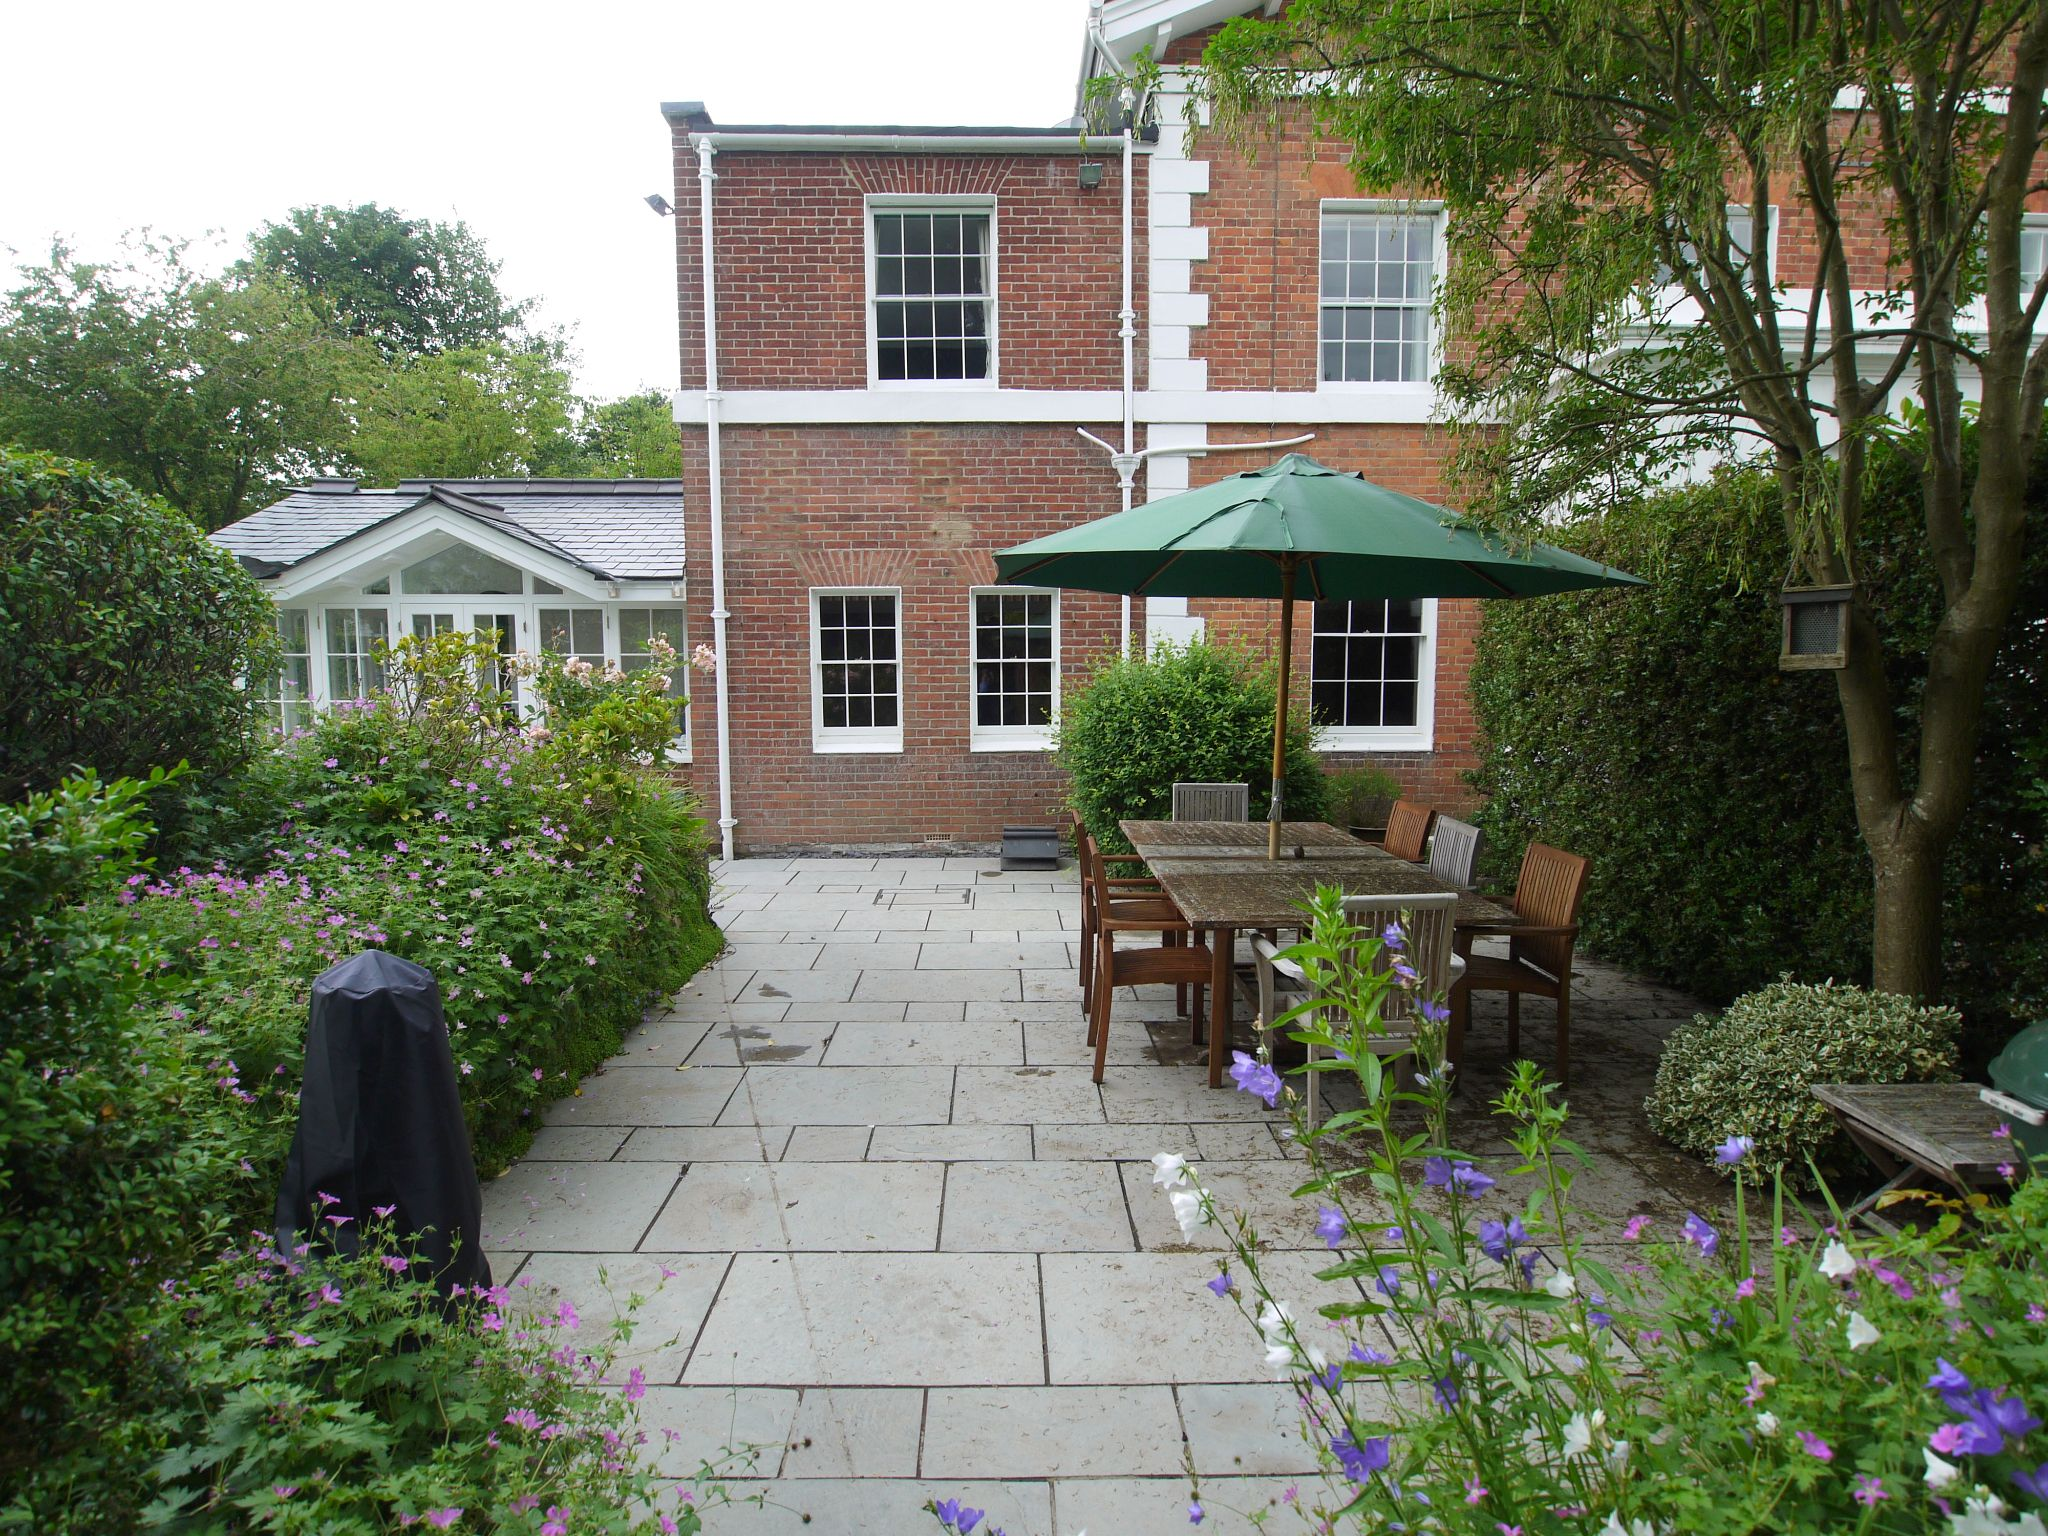 4 bedroom detached house For Sale in Sevenoaks - Photograph 20